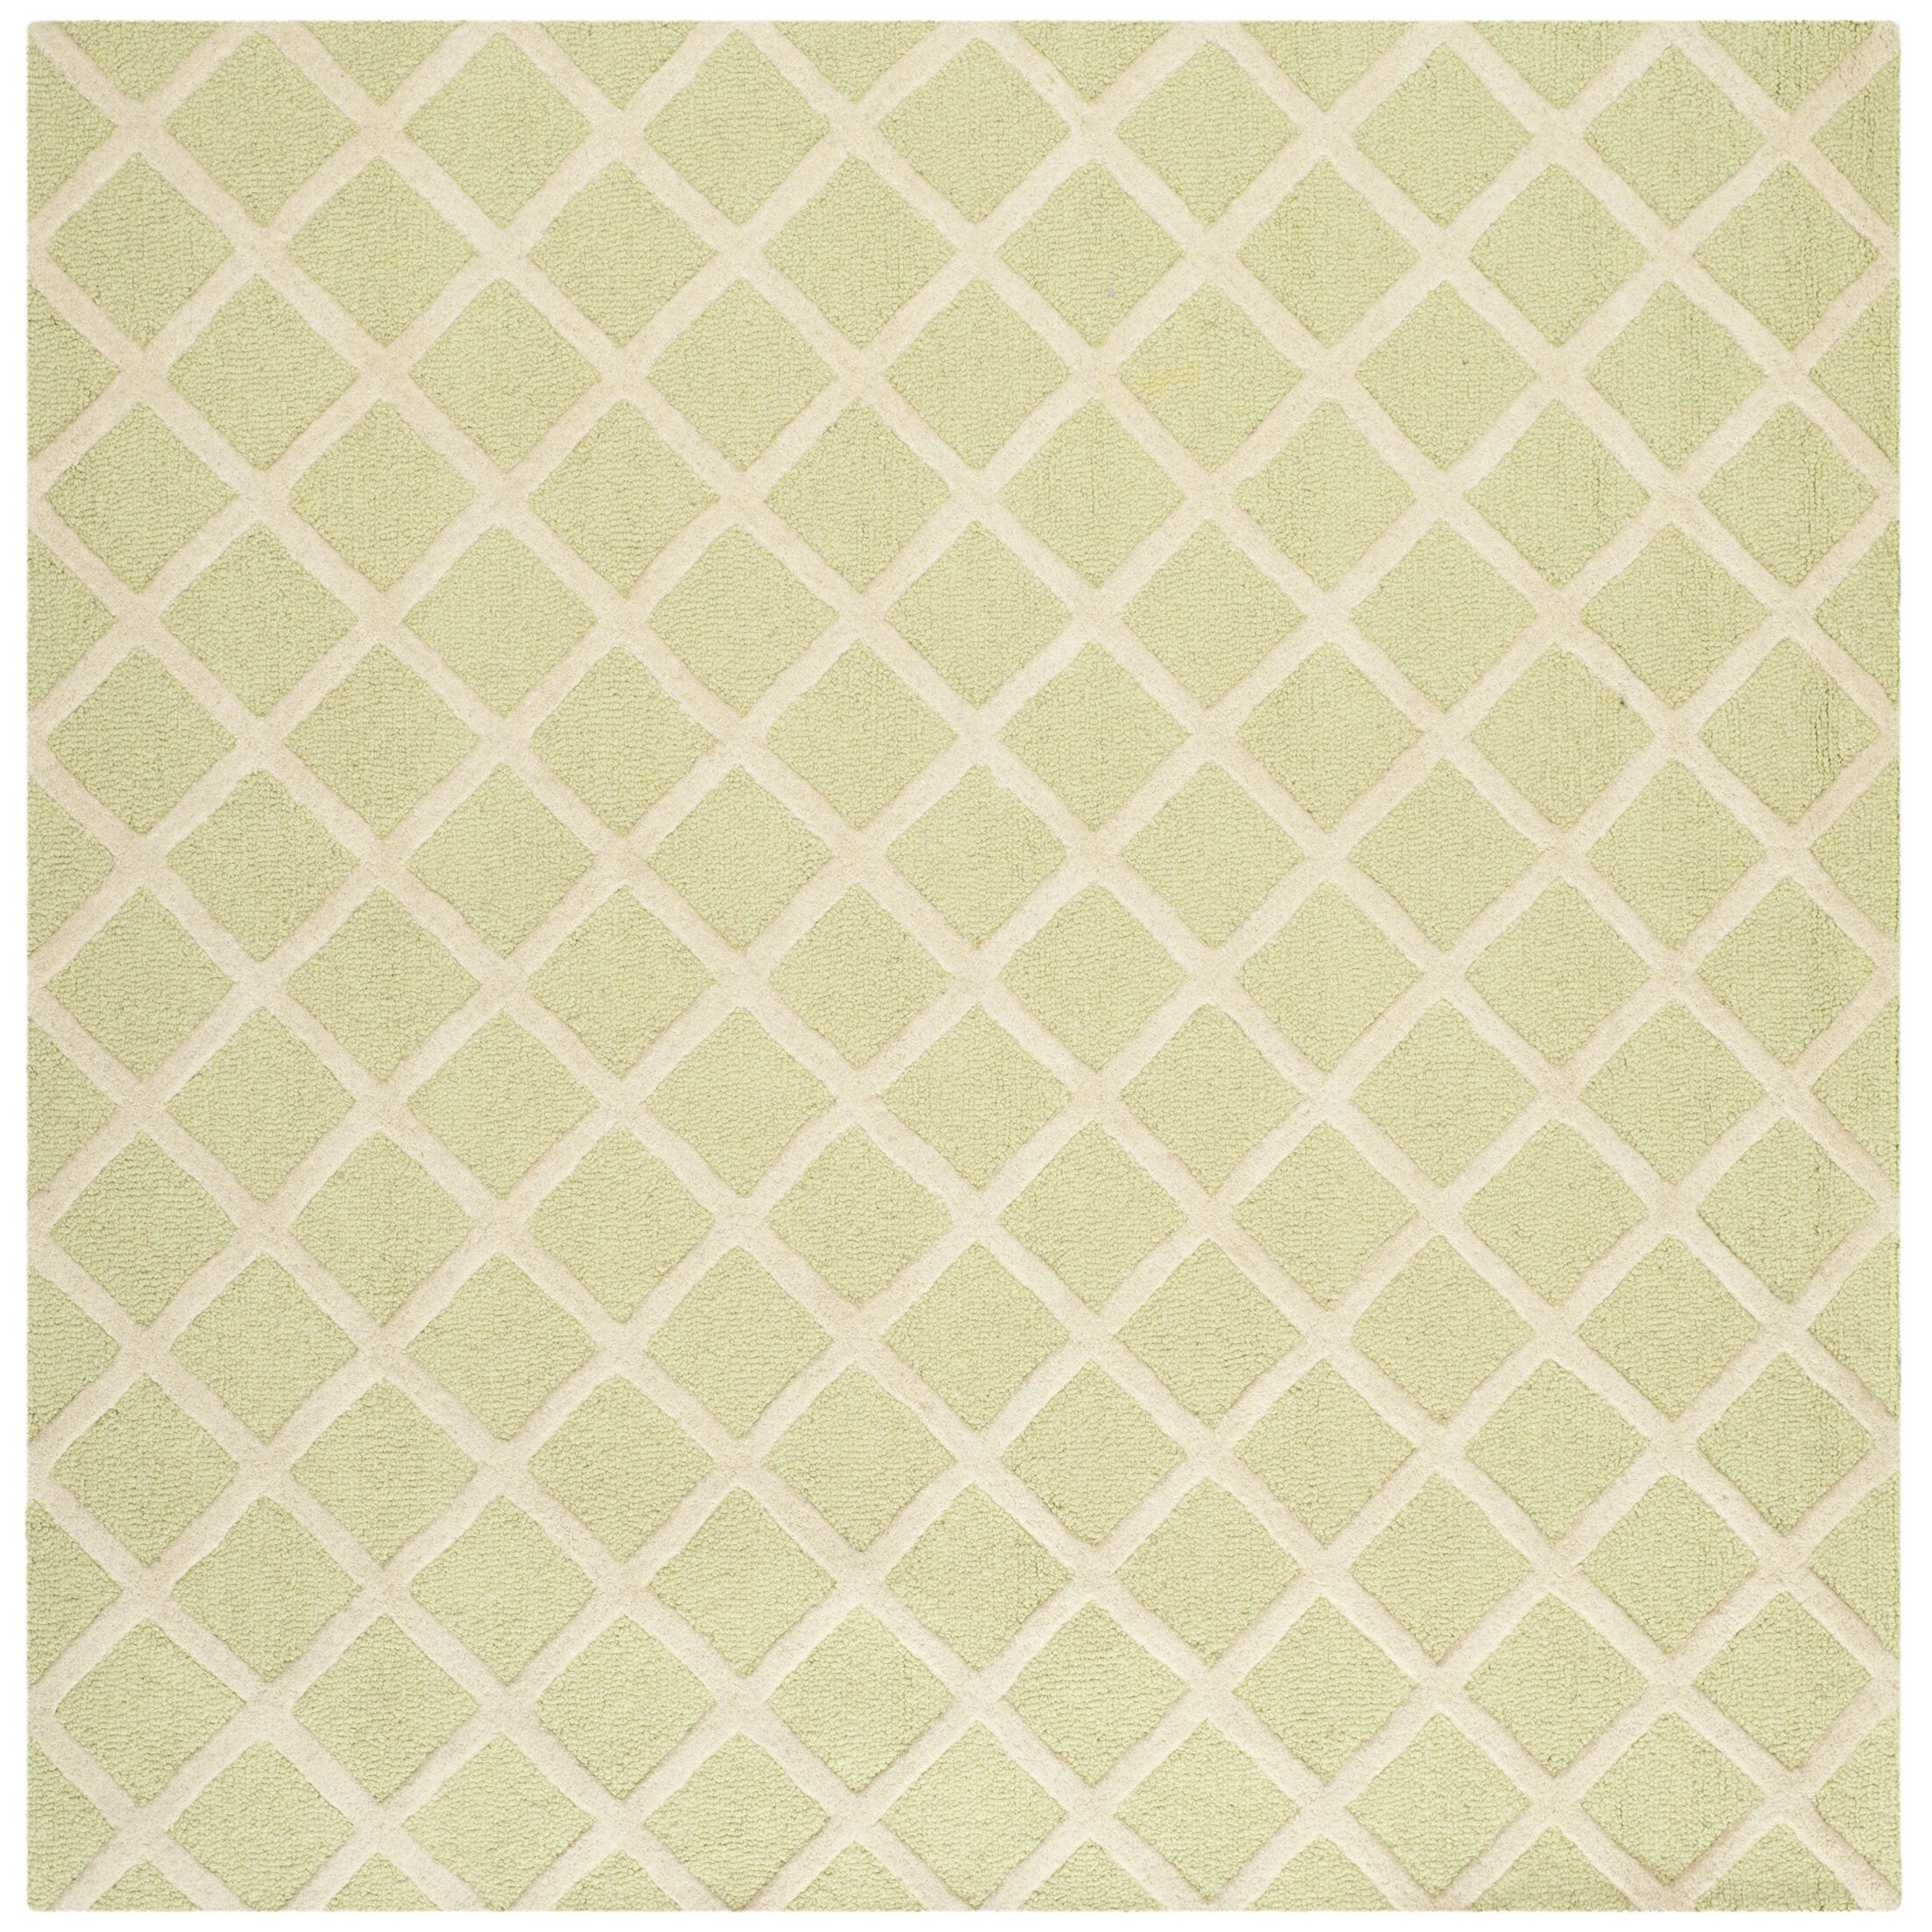 Martins Light Green & Ivory Area Rug Rug Size: Square 8'